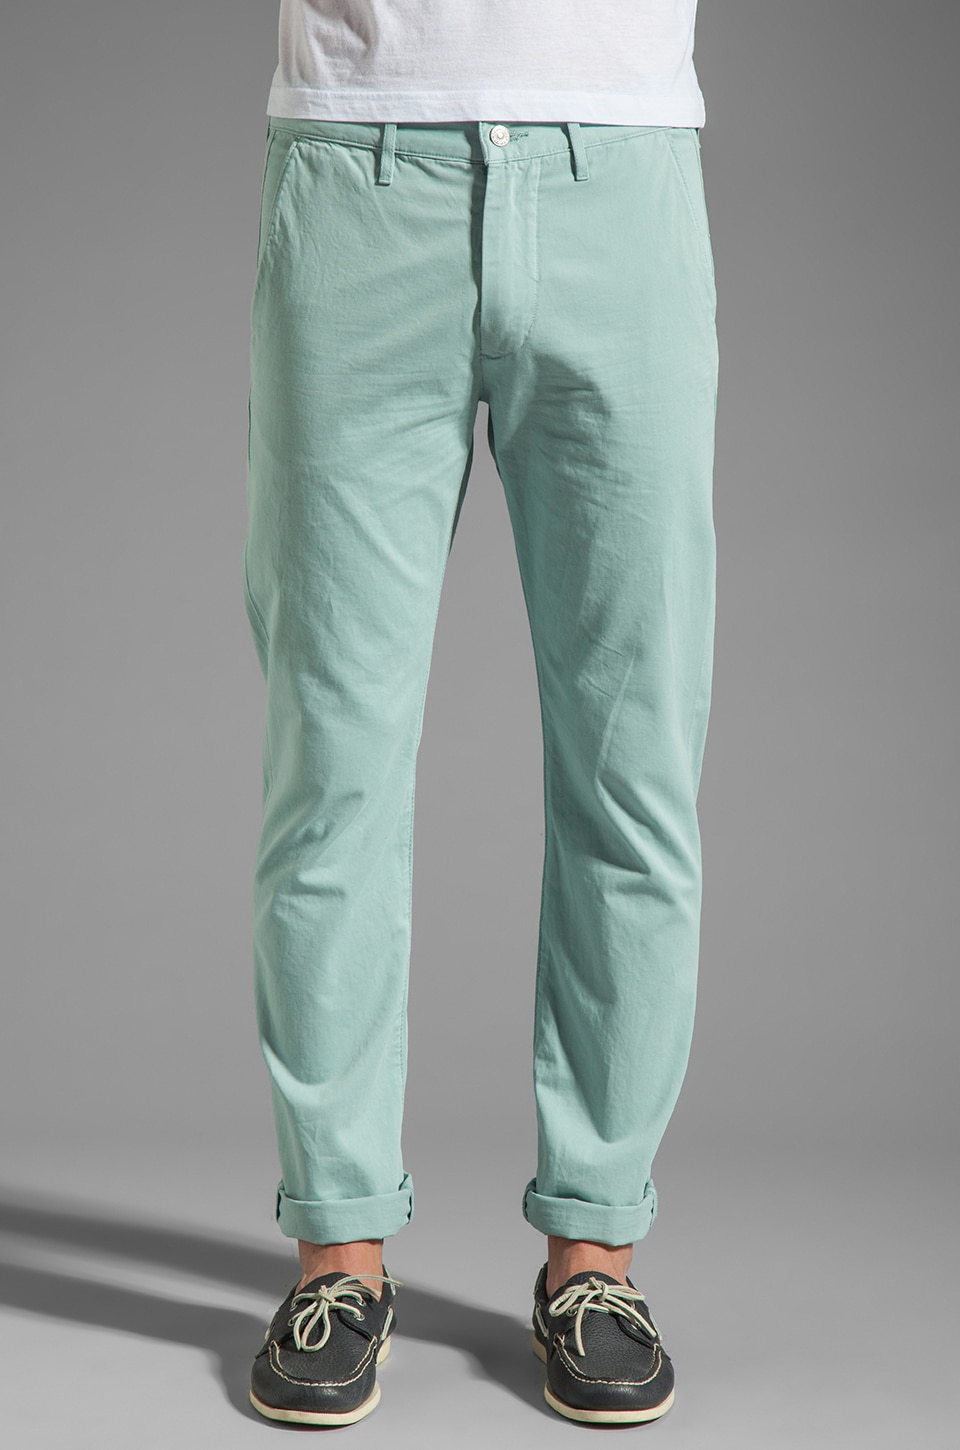 7 For All Mankind The Chino in Mint